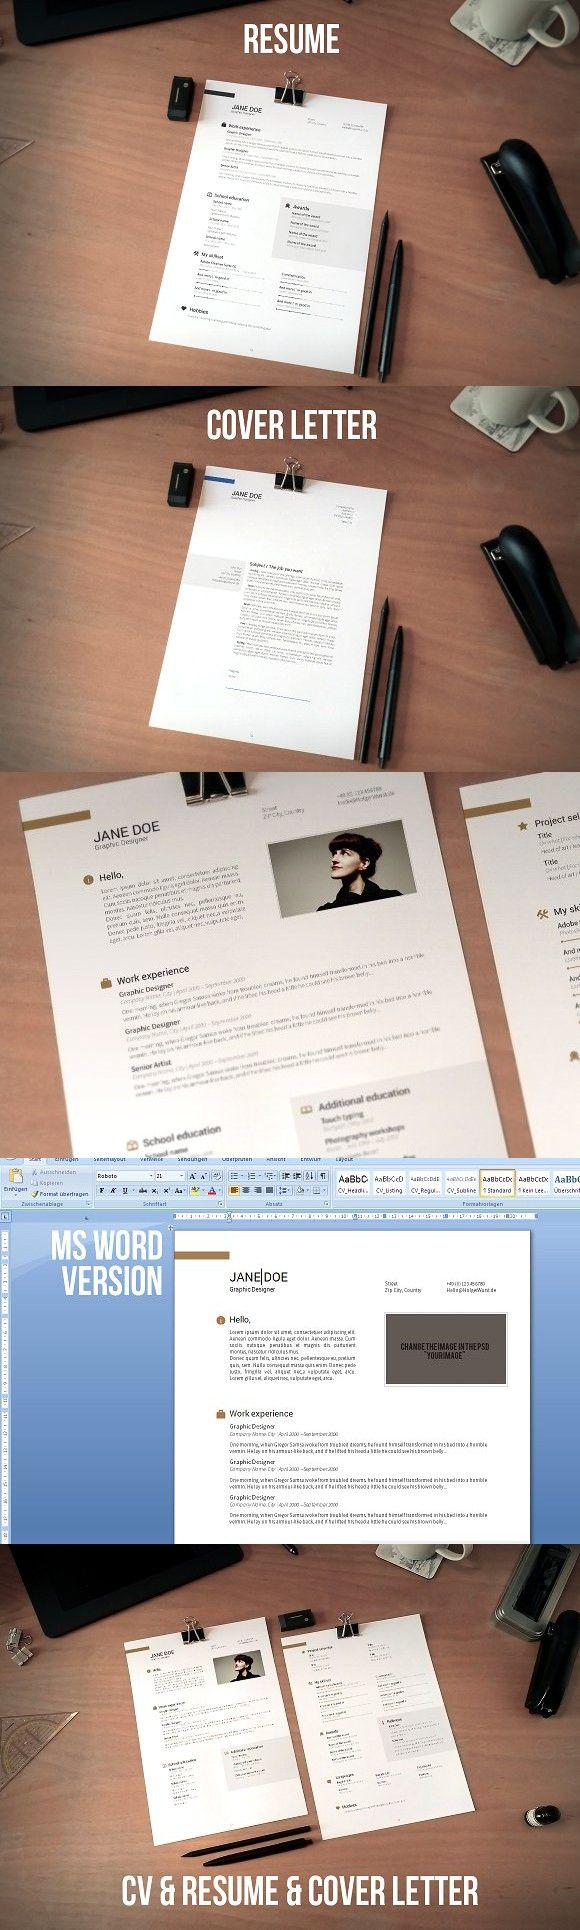 CV resume and cover letter set v2